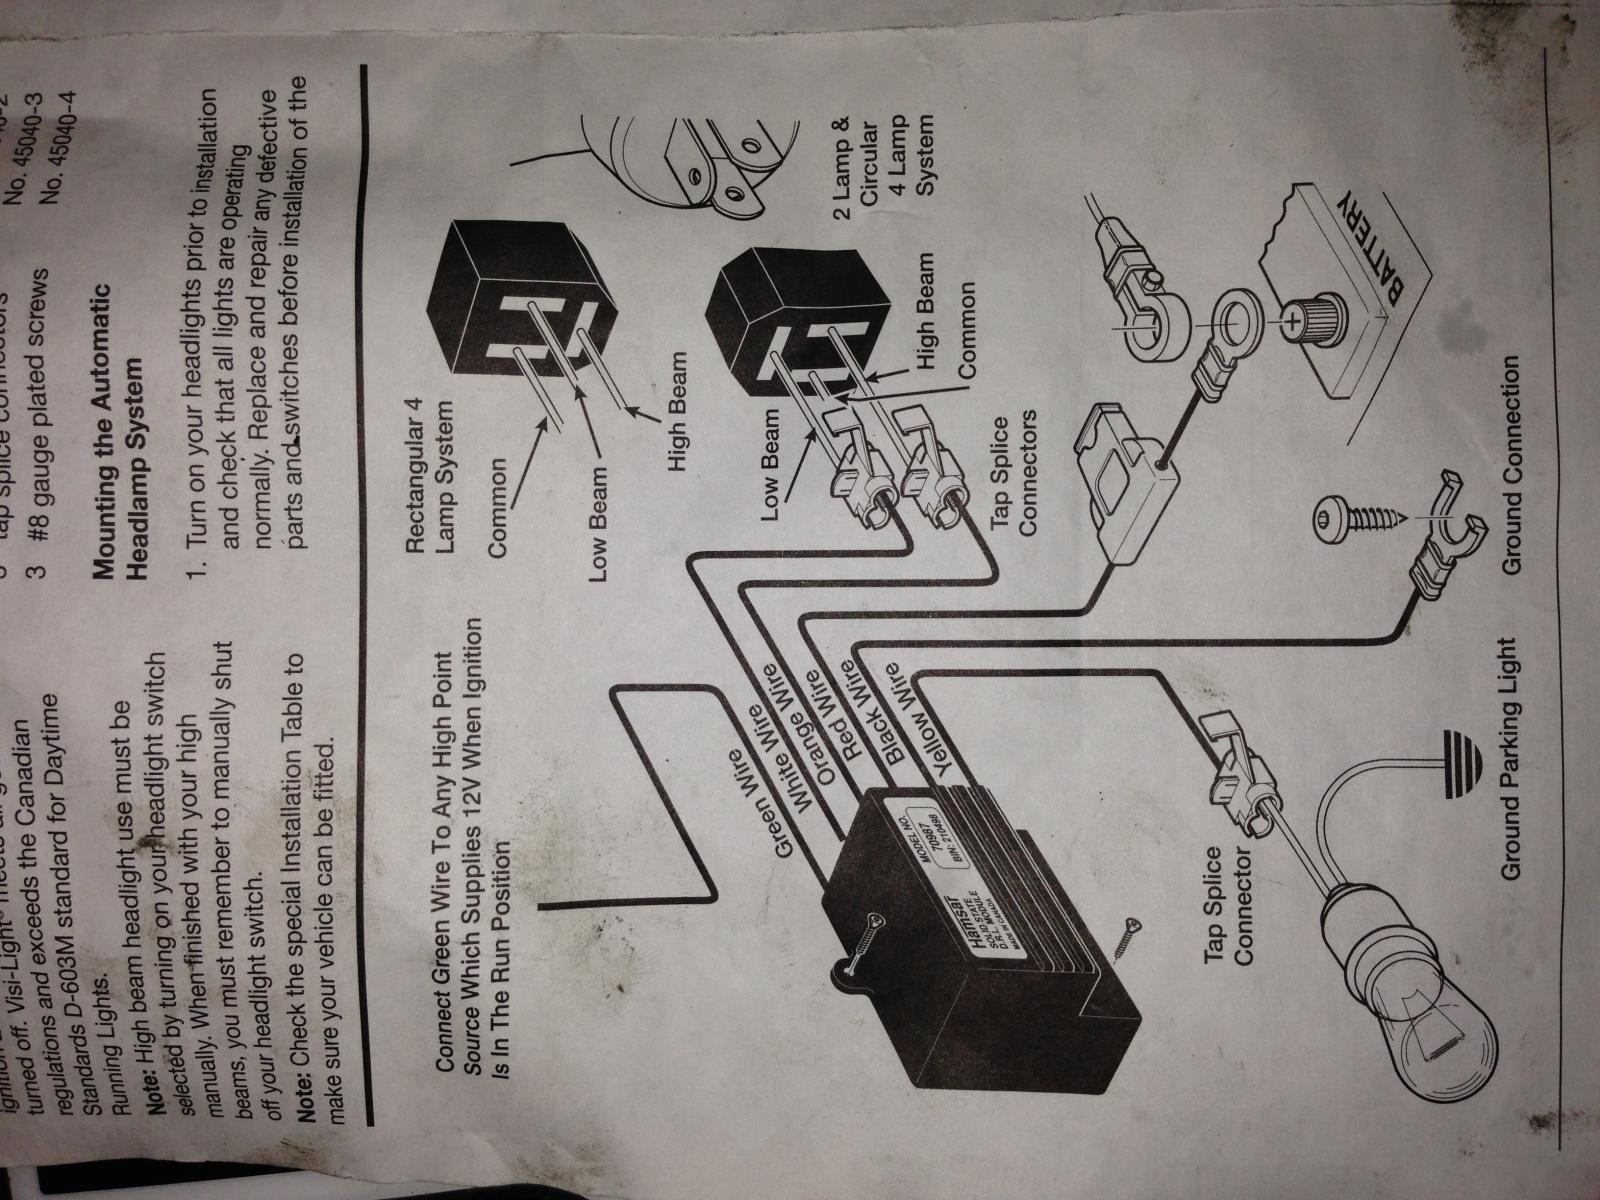 2001 Mustang Ccrm Location Wiring Diagram Photos For Help Your